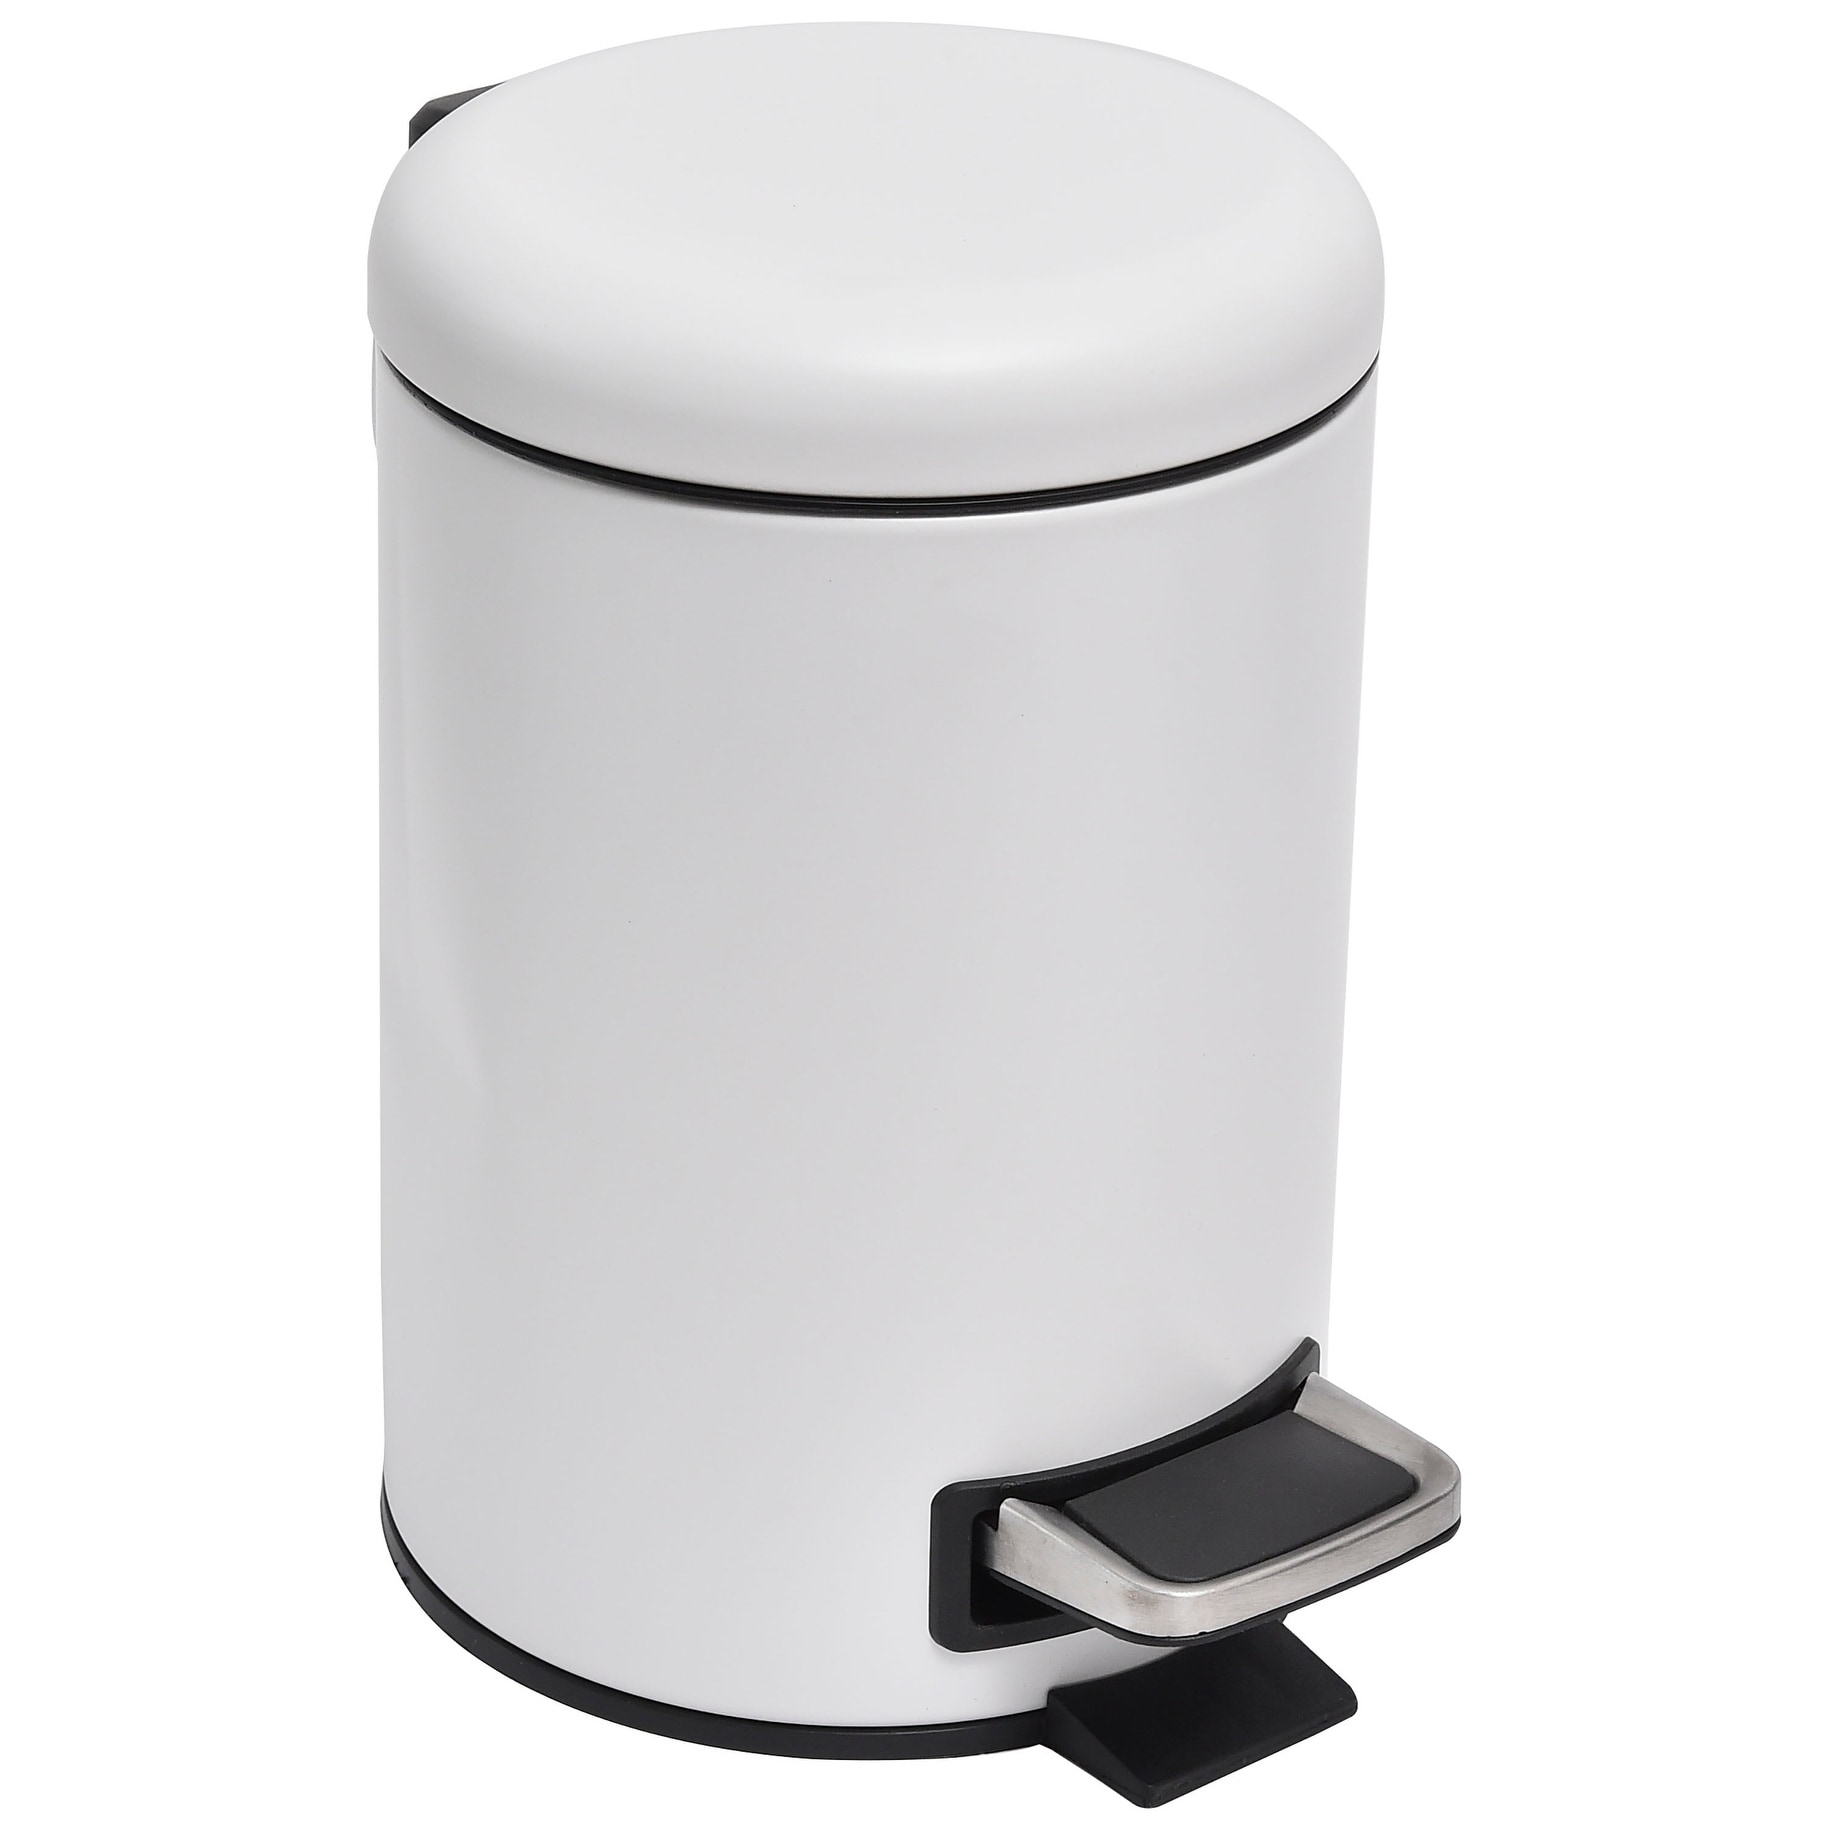 Small White Trash Can With Lid Evideco Soft Close Small Round Metal Bathroom Floor Step Trash Can Waste Bin 3 Liters 8 Gal White